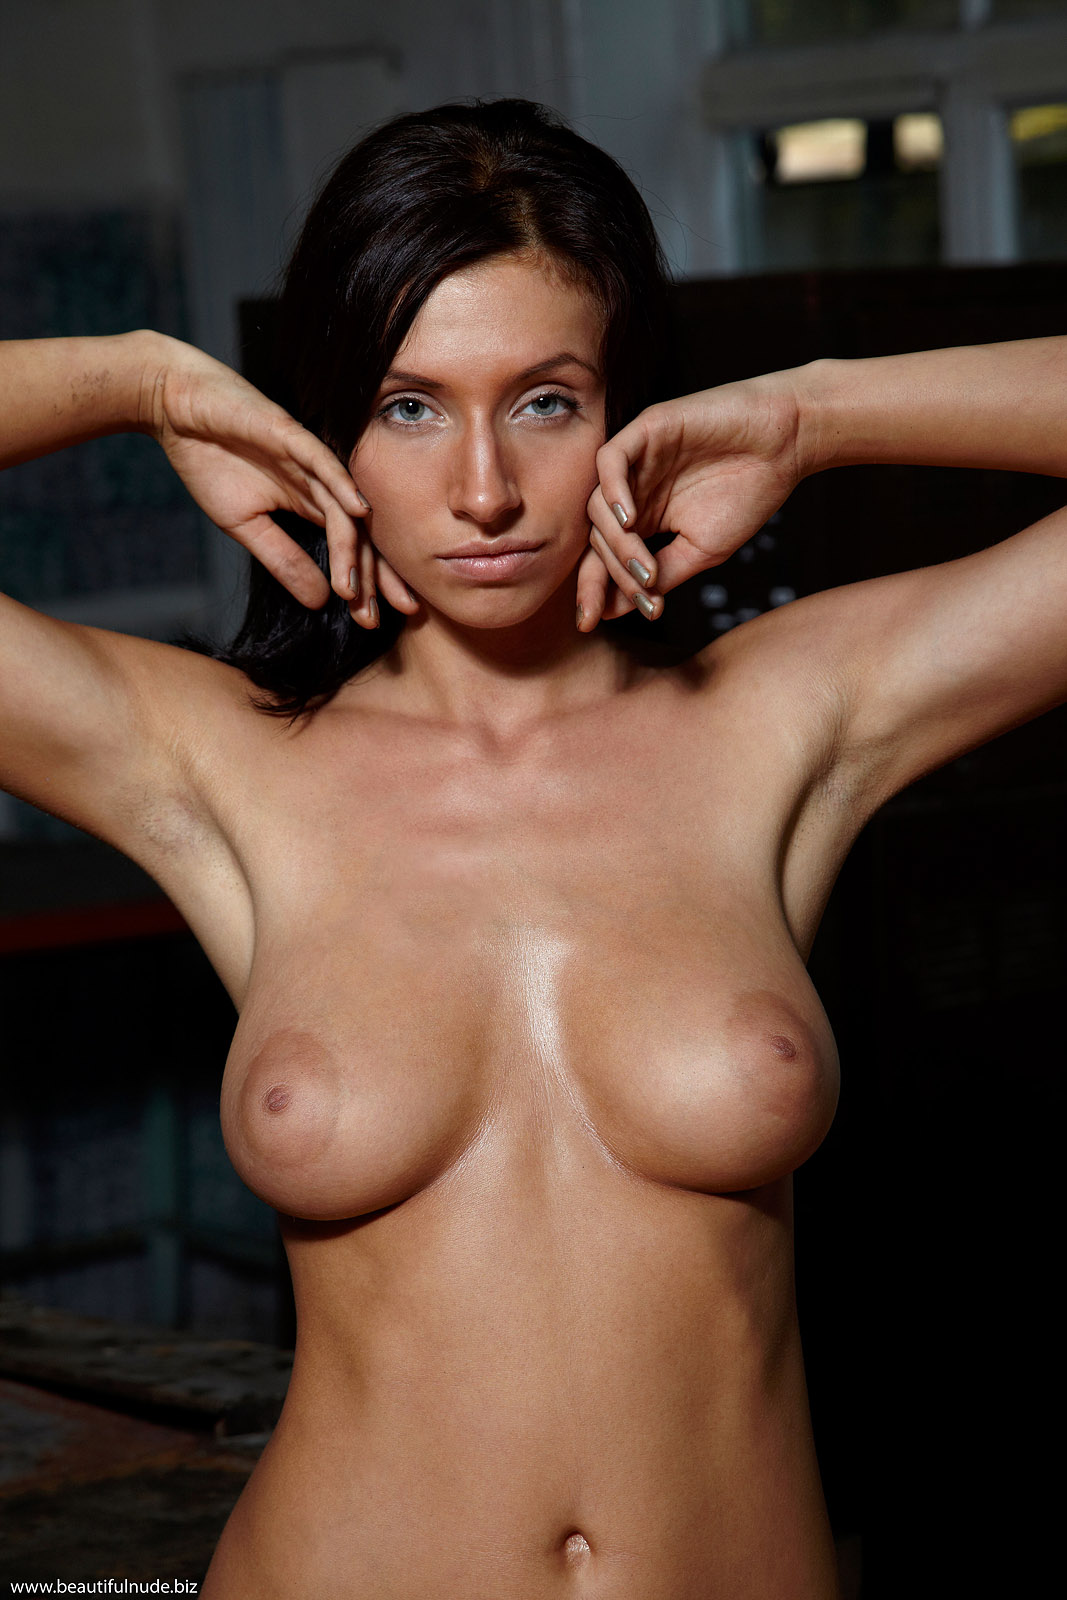 Nadia nude photos consider, that